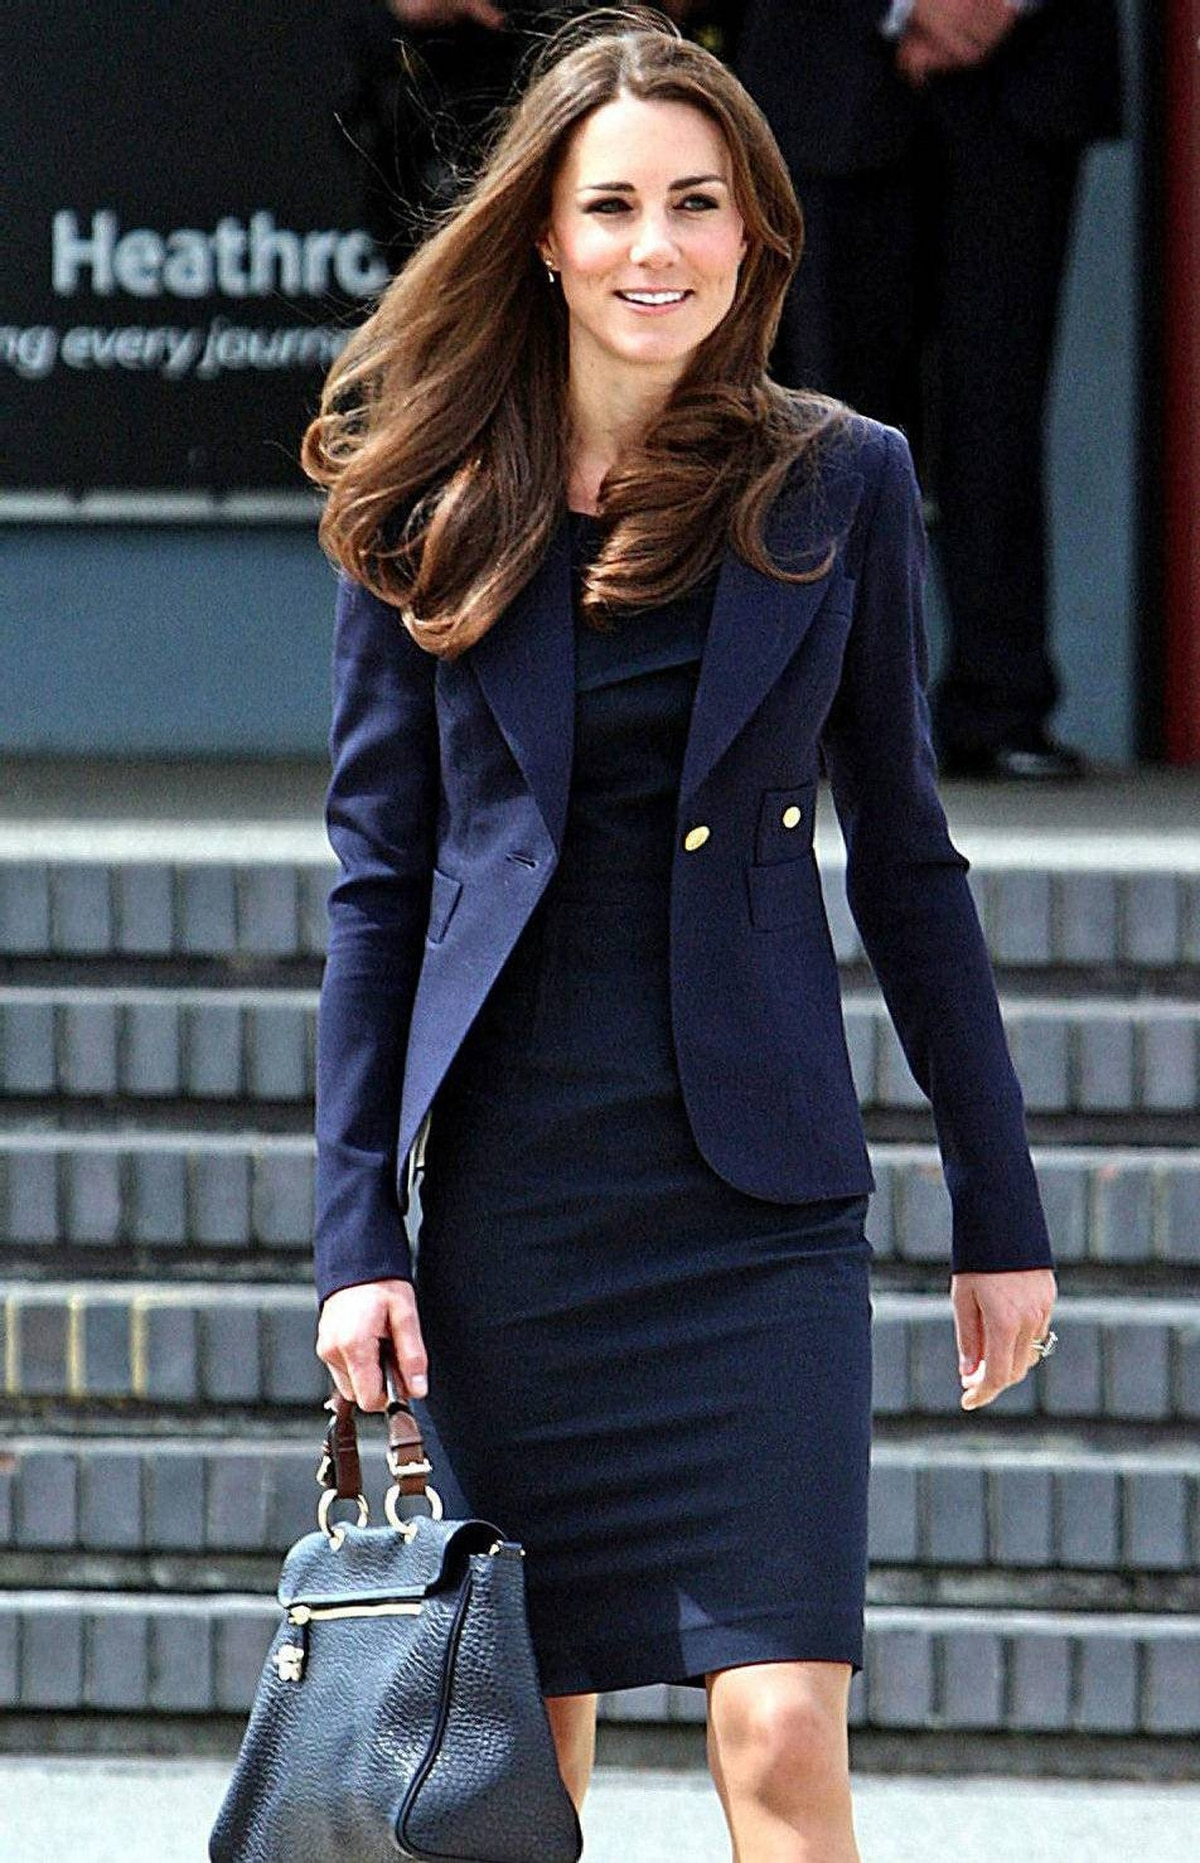 Catherine, The Duchess of Cambridge, arrives to board a plane of the Royal Canadian Air Force at London's Heathrow Airport to travel to Ottawa, Canada, on June 30, 2011. Prince William and his wife Catherine left Britain on Thursday for a nine-day tour of Canada, kicking off their first official foreign trip as husband and wife, a royal official said. The 29-year-old newlyweds flew out of London's Heathrow airport and will arrive in Ottawa later in the day, a royal spokeswoman told AFP.